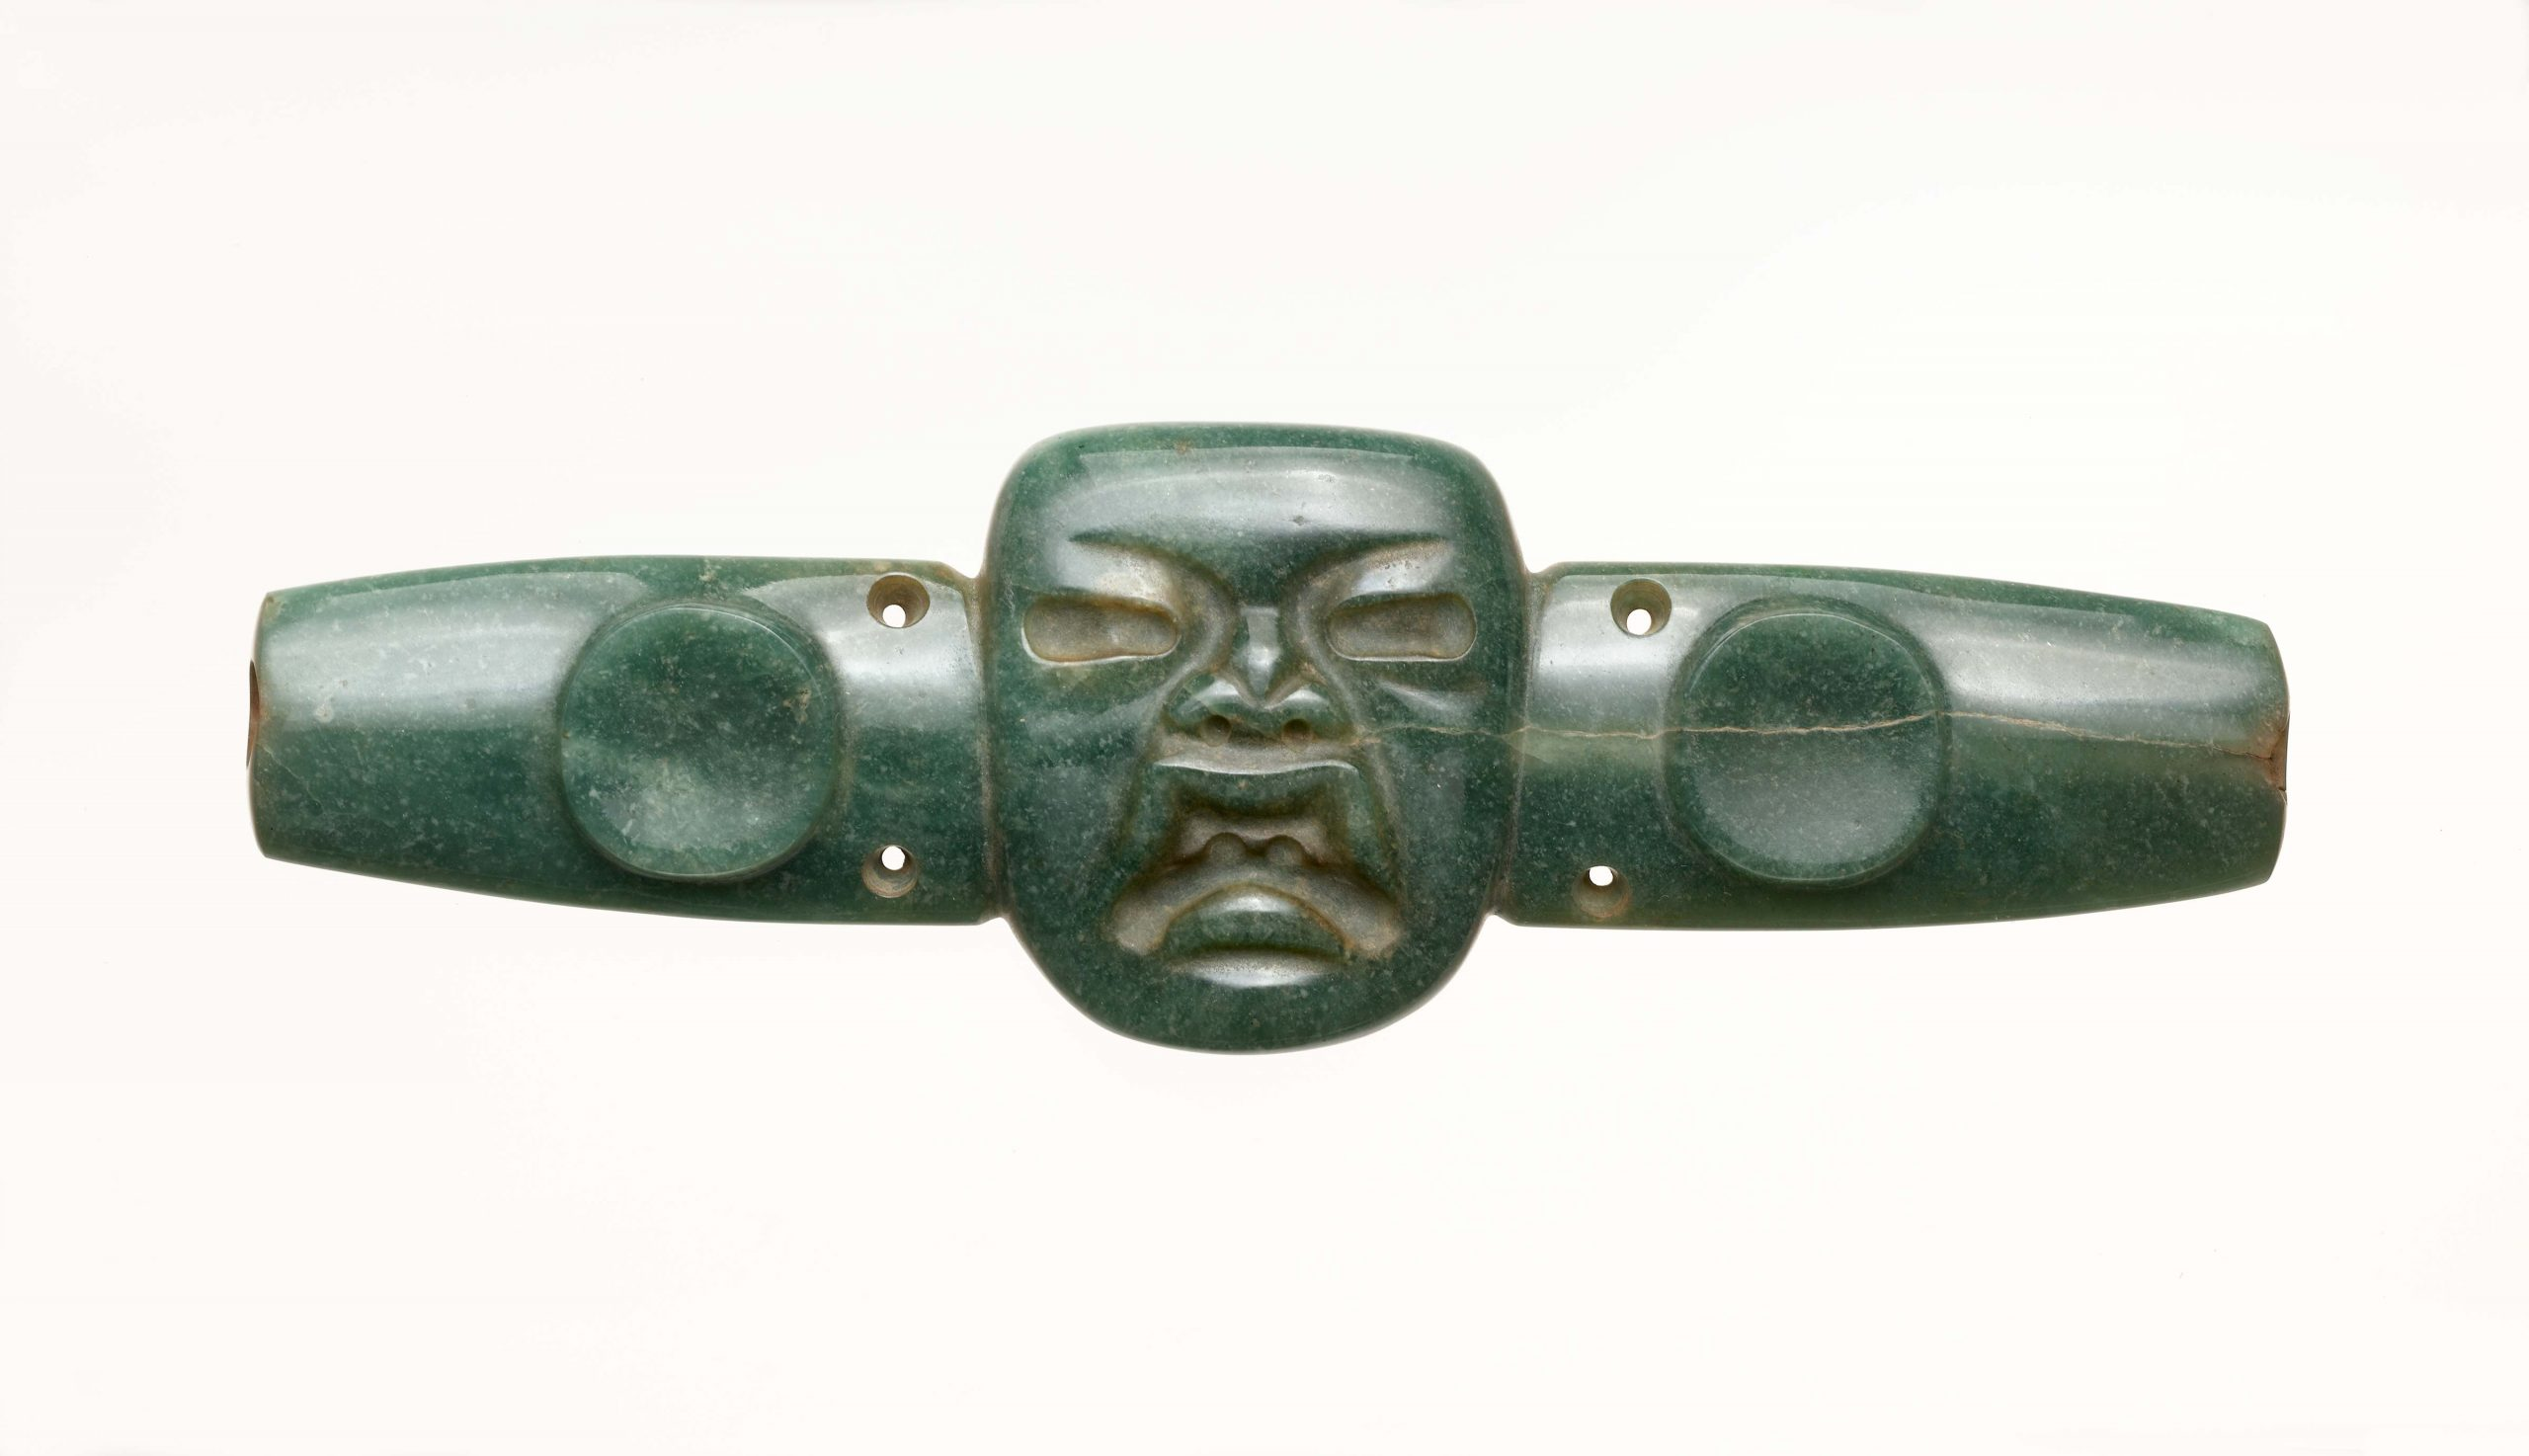 Long, horizontal, blue-green chest ornament with face in relief in center.